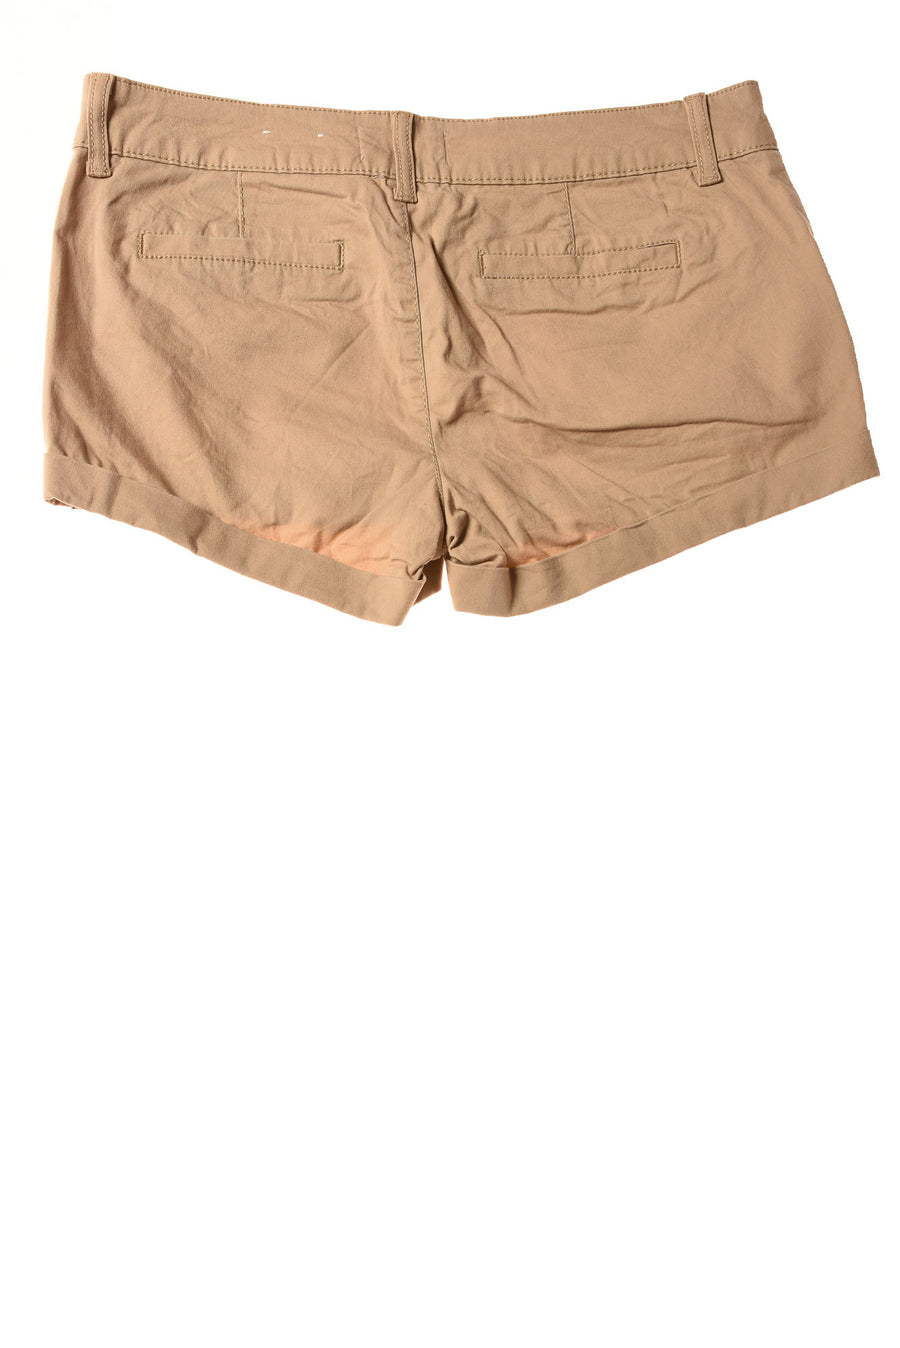 Women's Shorts By So